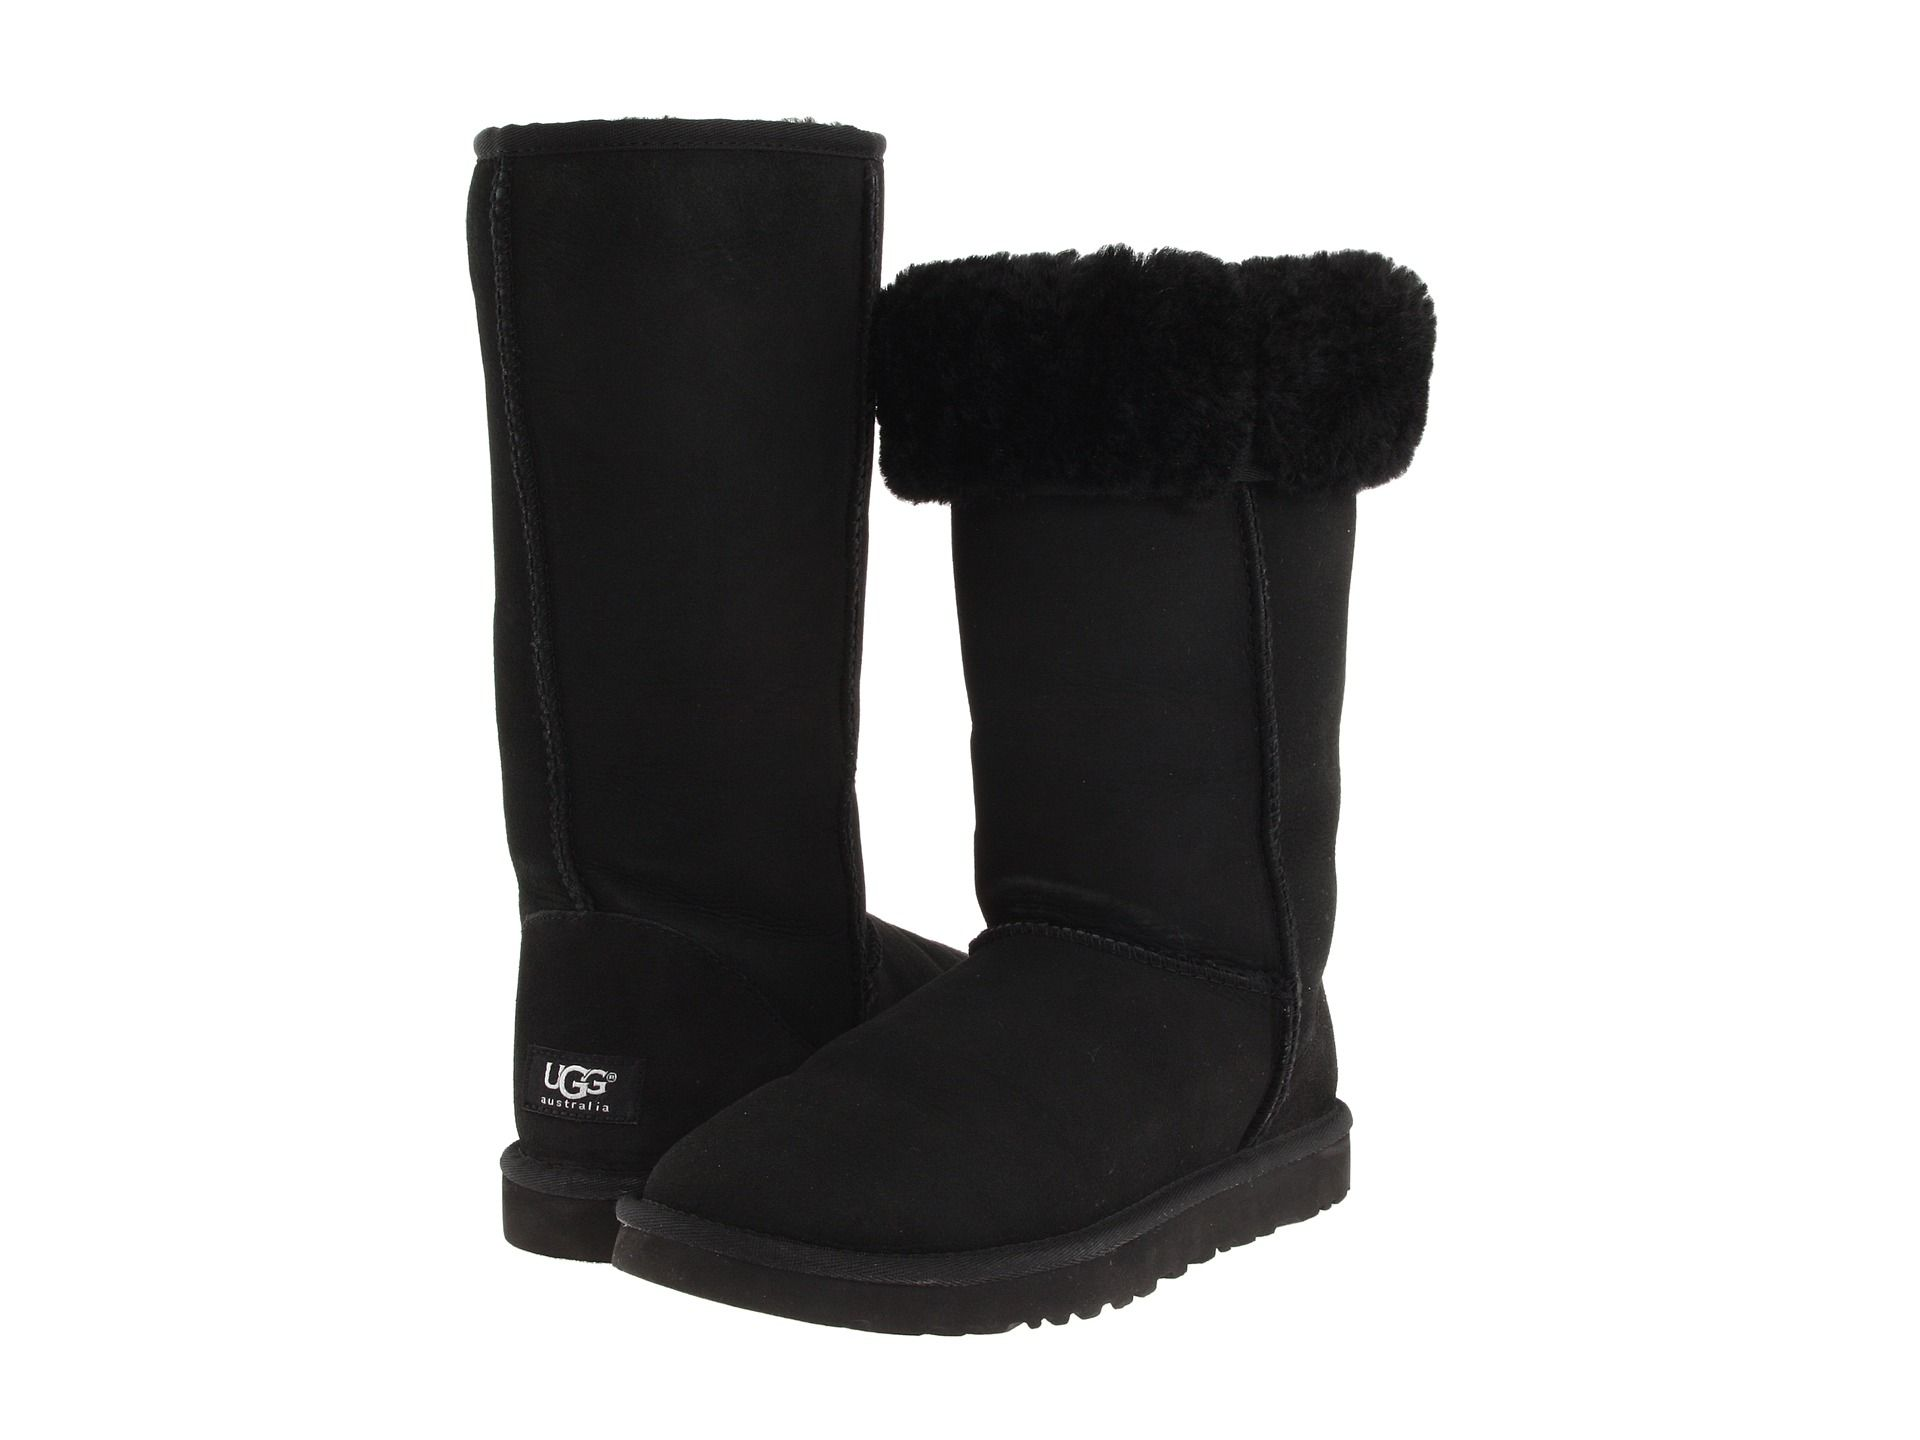 a204f28bb45 UGG Classic Tall Black - Zappos.com Free Shipping BOTH Ways | My ...